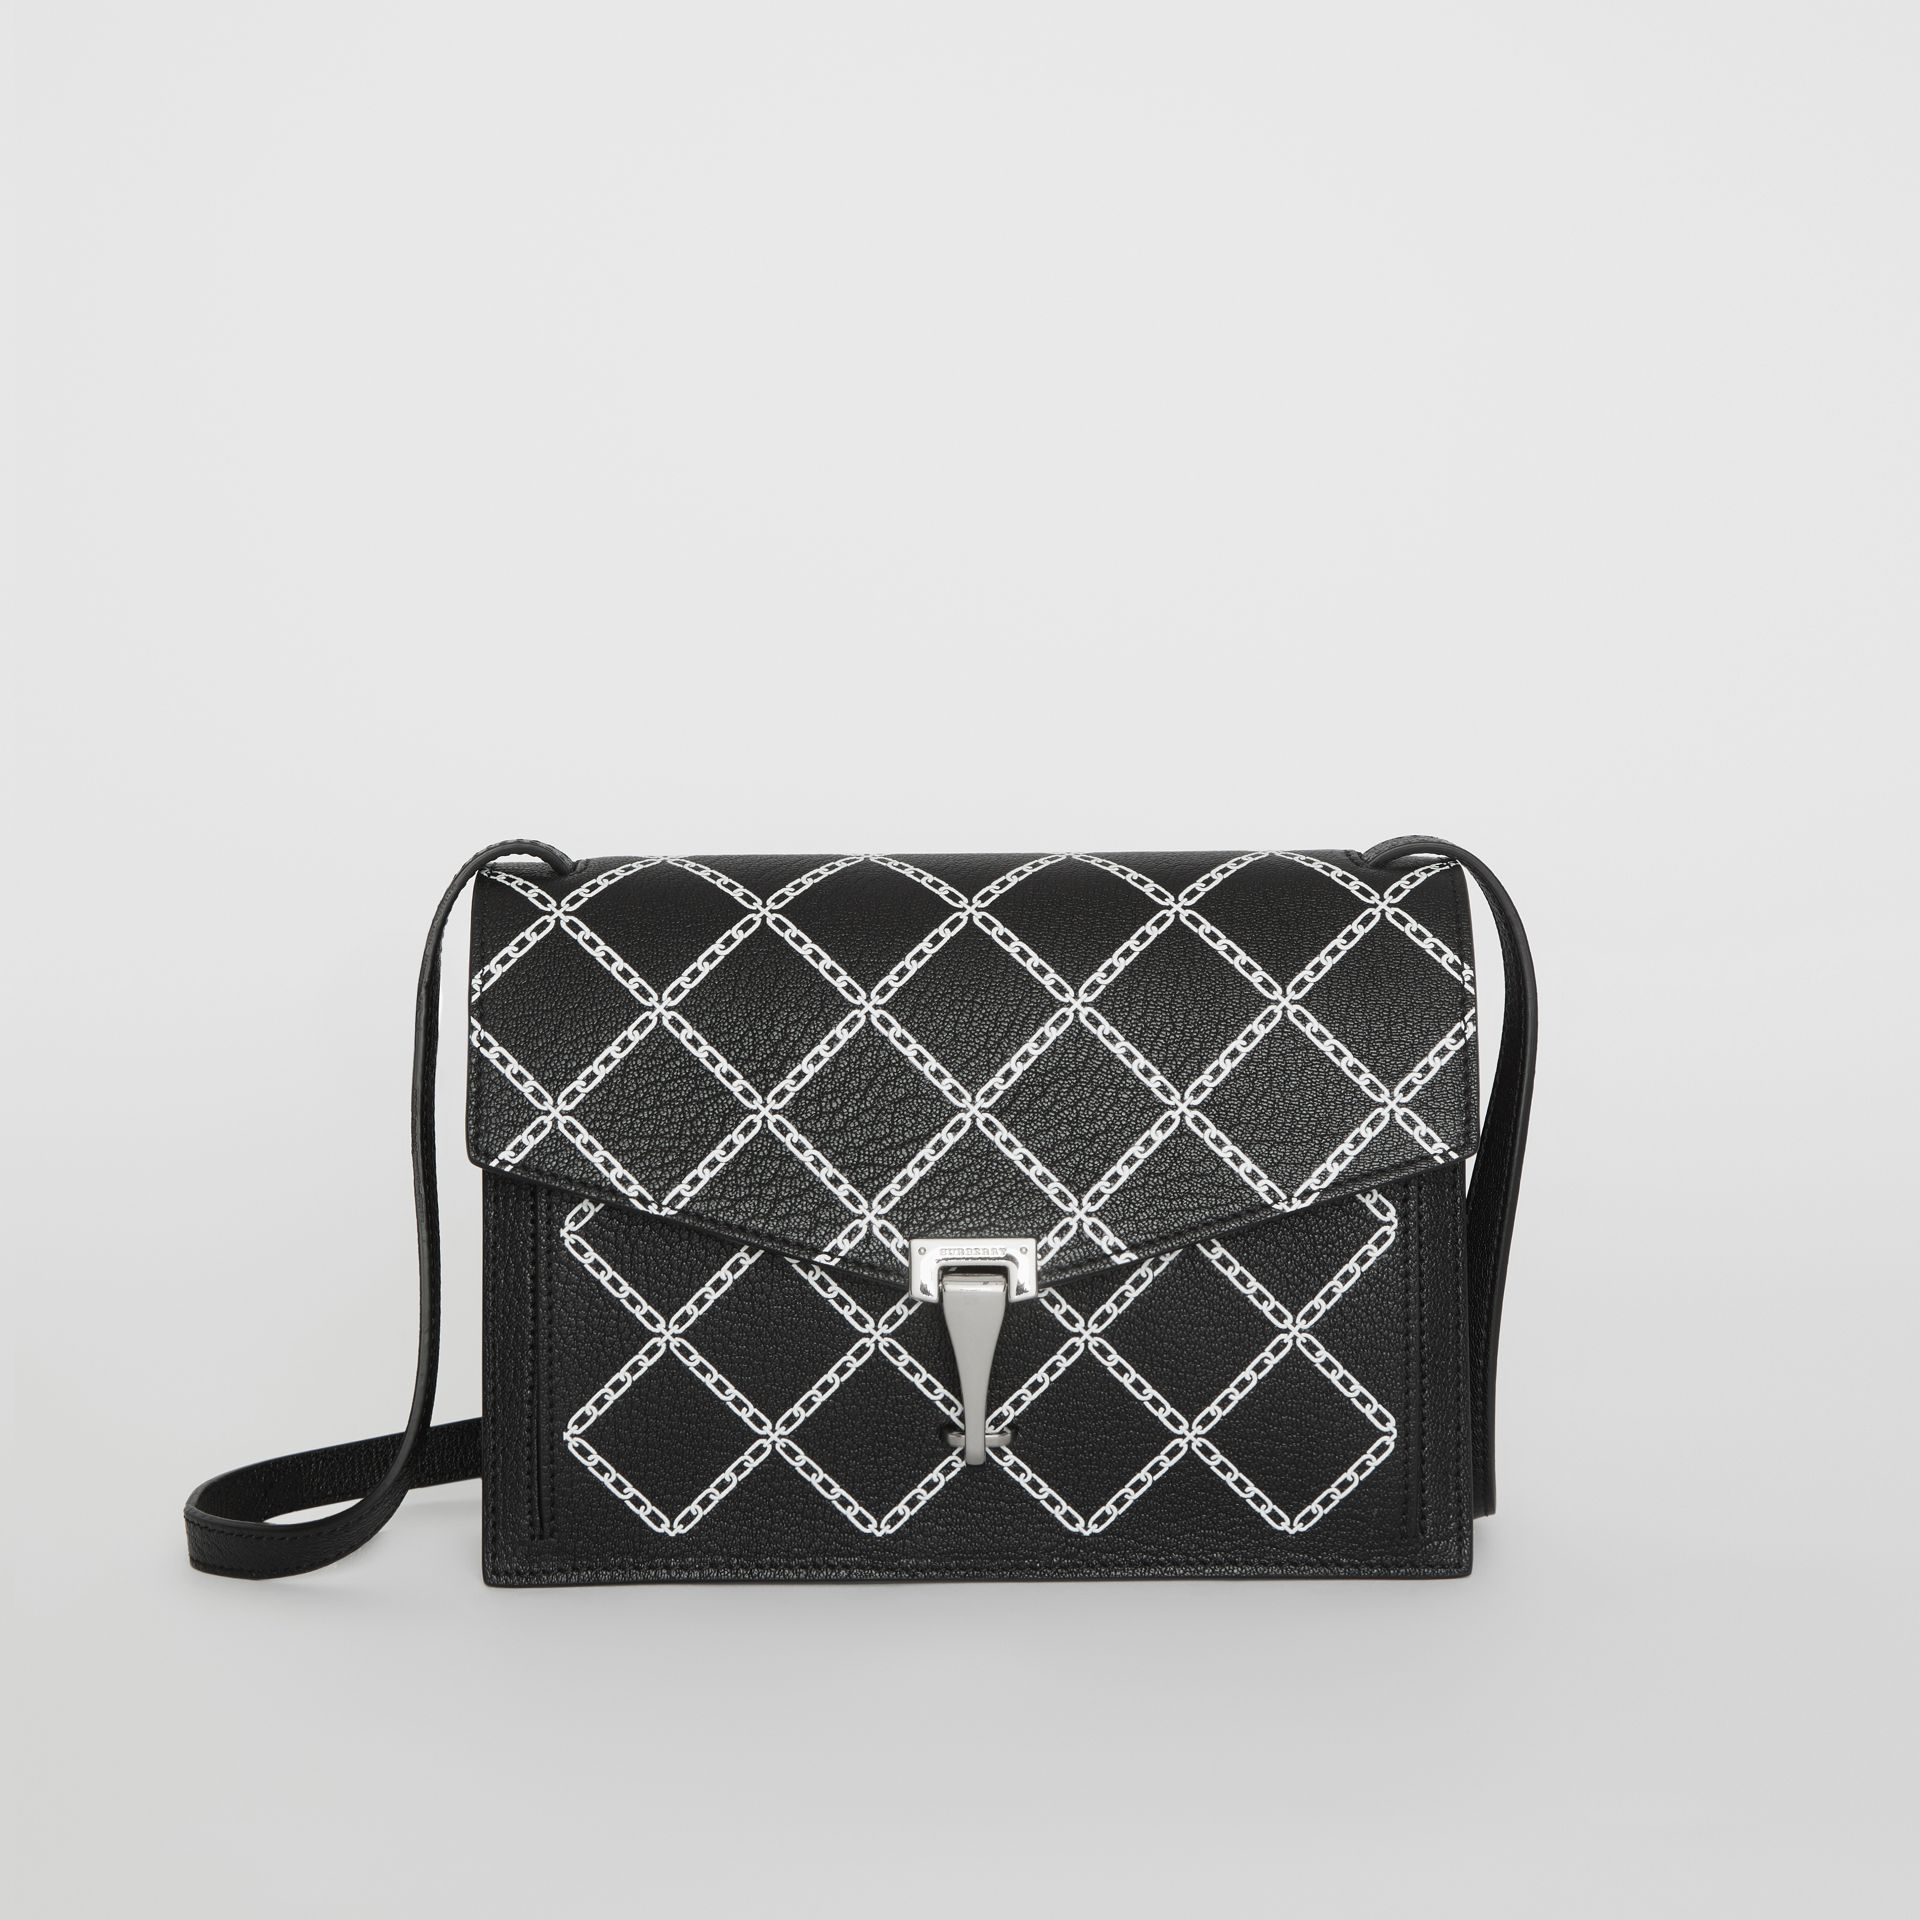 Small Link Print Leather Crossbody Bag in Black - Women | Burberry - gallery image 0